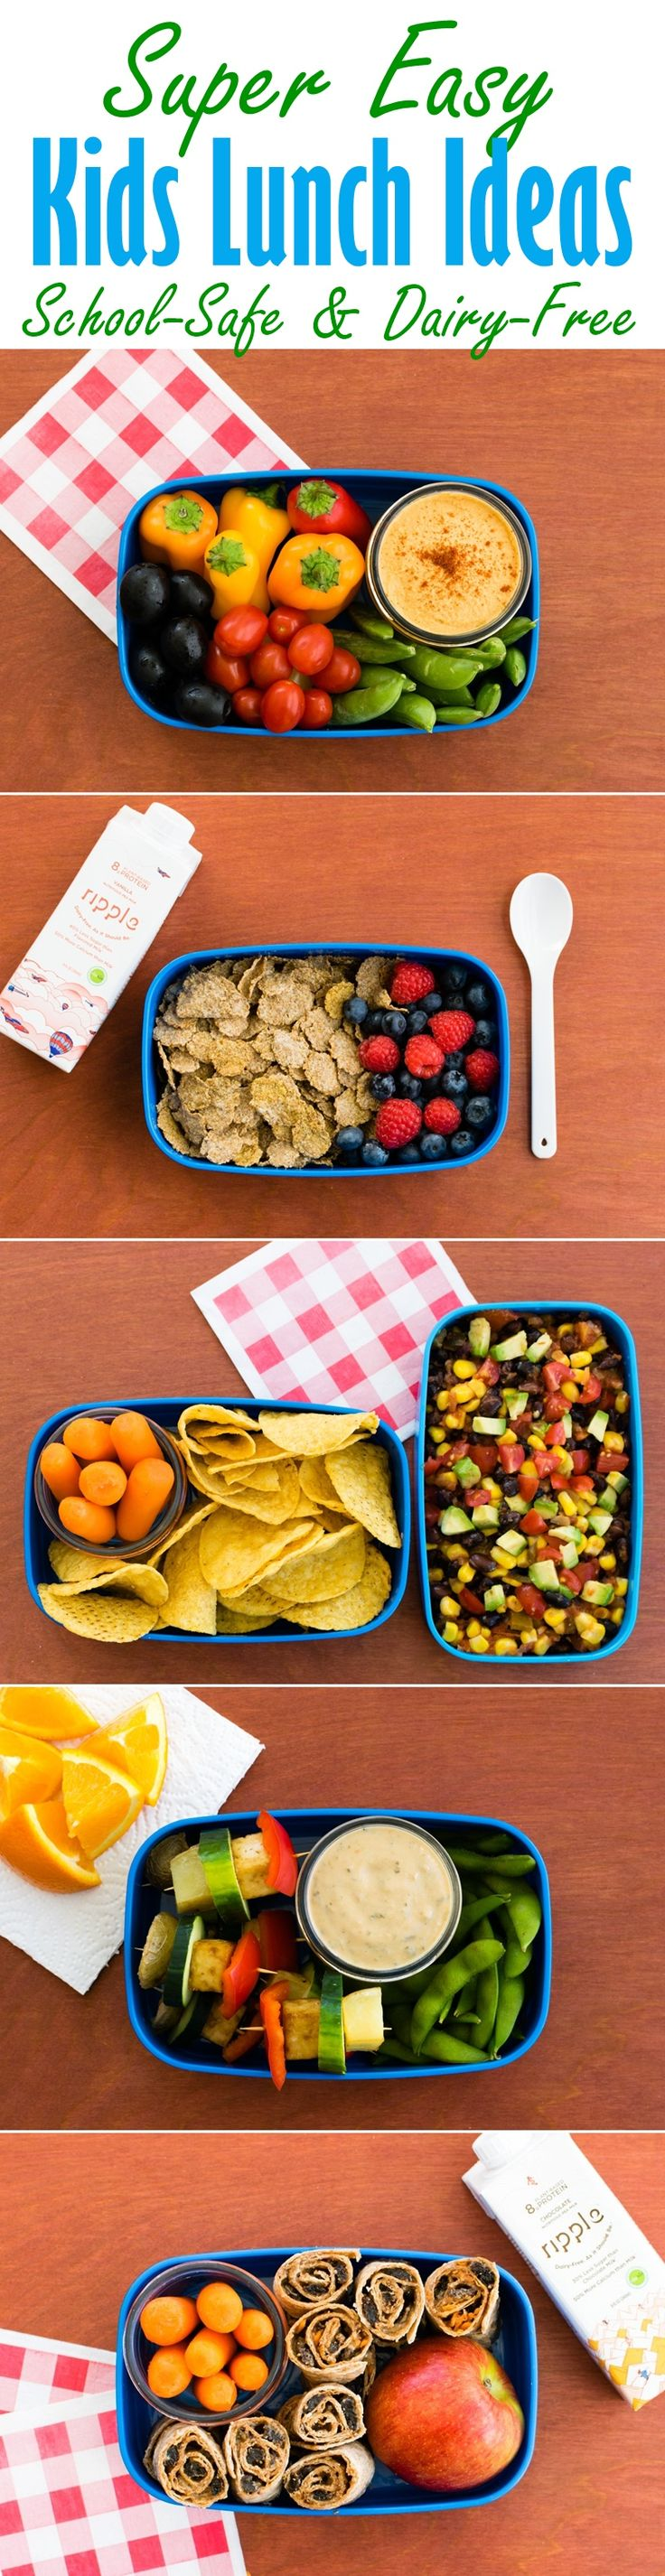 Super Easy Kids Lunch Ideas - No Prep, School Safe, Dairy Free and options for Plant Based, Top Allergen Free, Gluten Free and Vegan